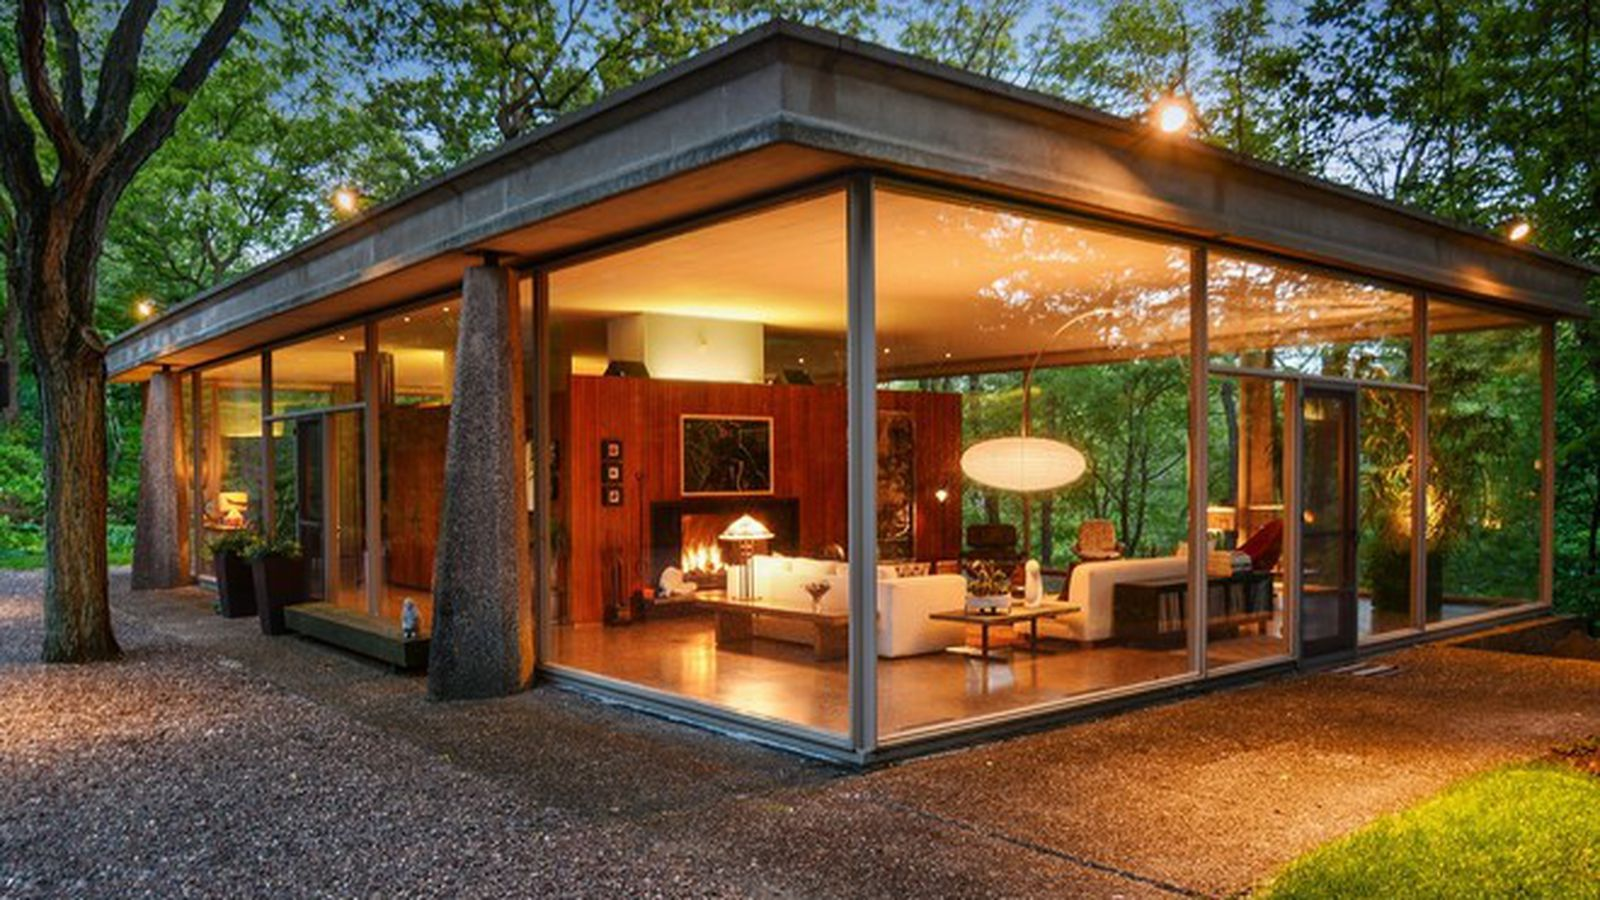 Own An Award Winning Midcentury Glass House For Just